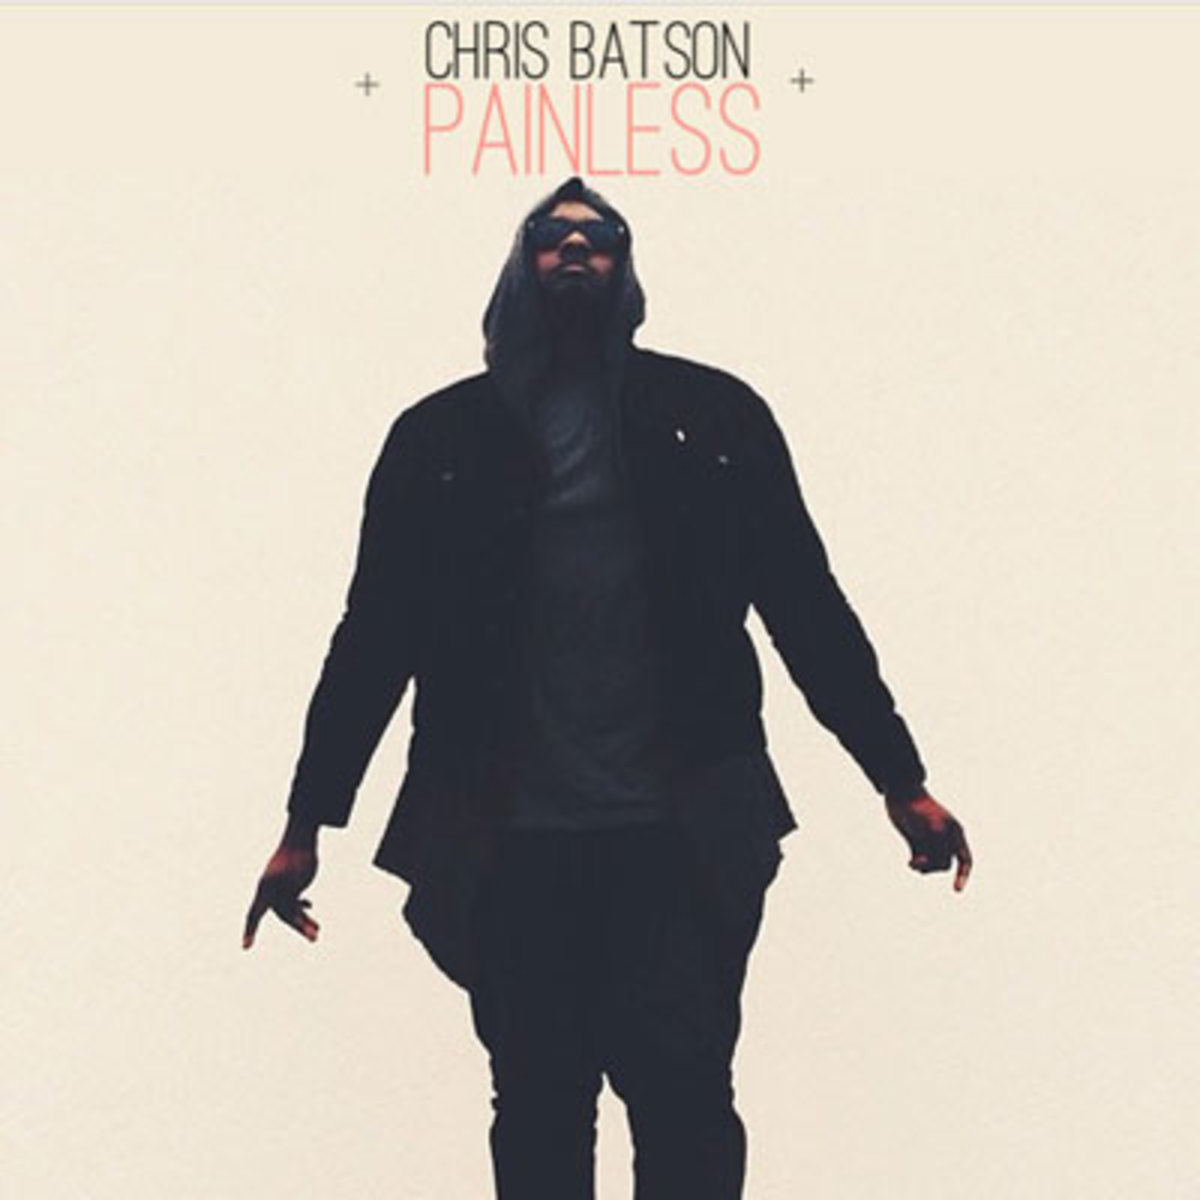 chrisbatson-painless.jpg